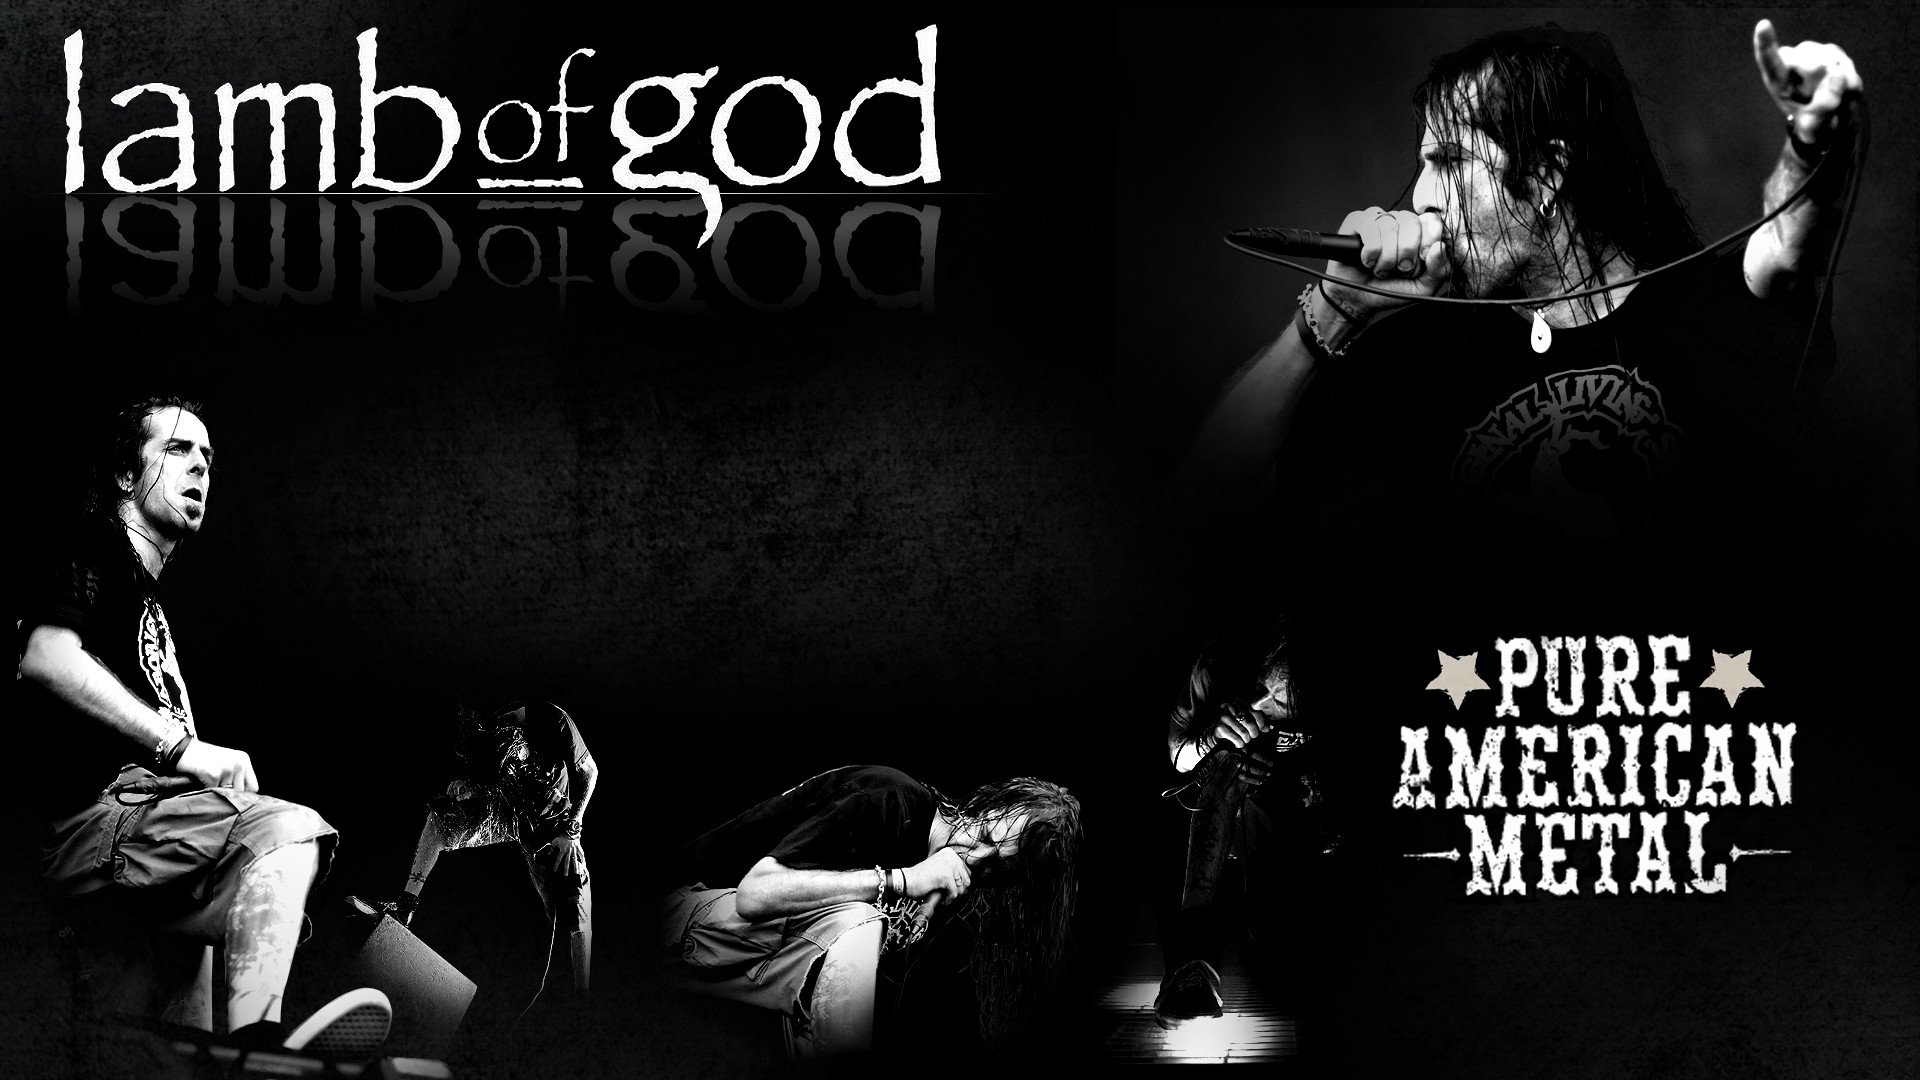 LAMB OF GOD groove metal heavy poster concert microphone f wallpaper 1920x1080